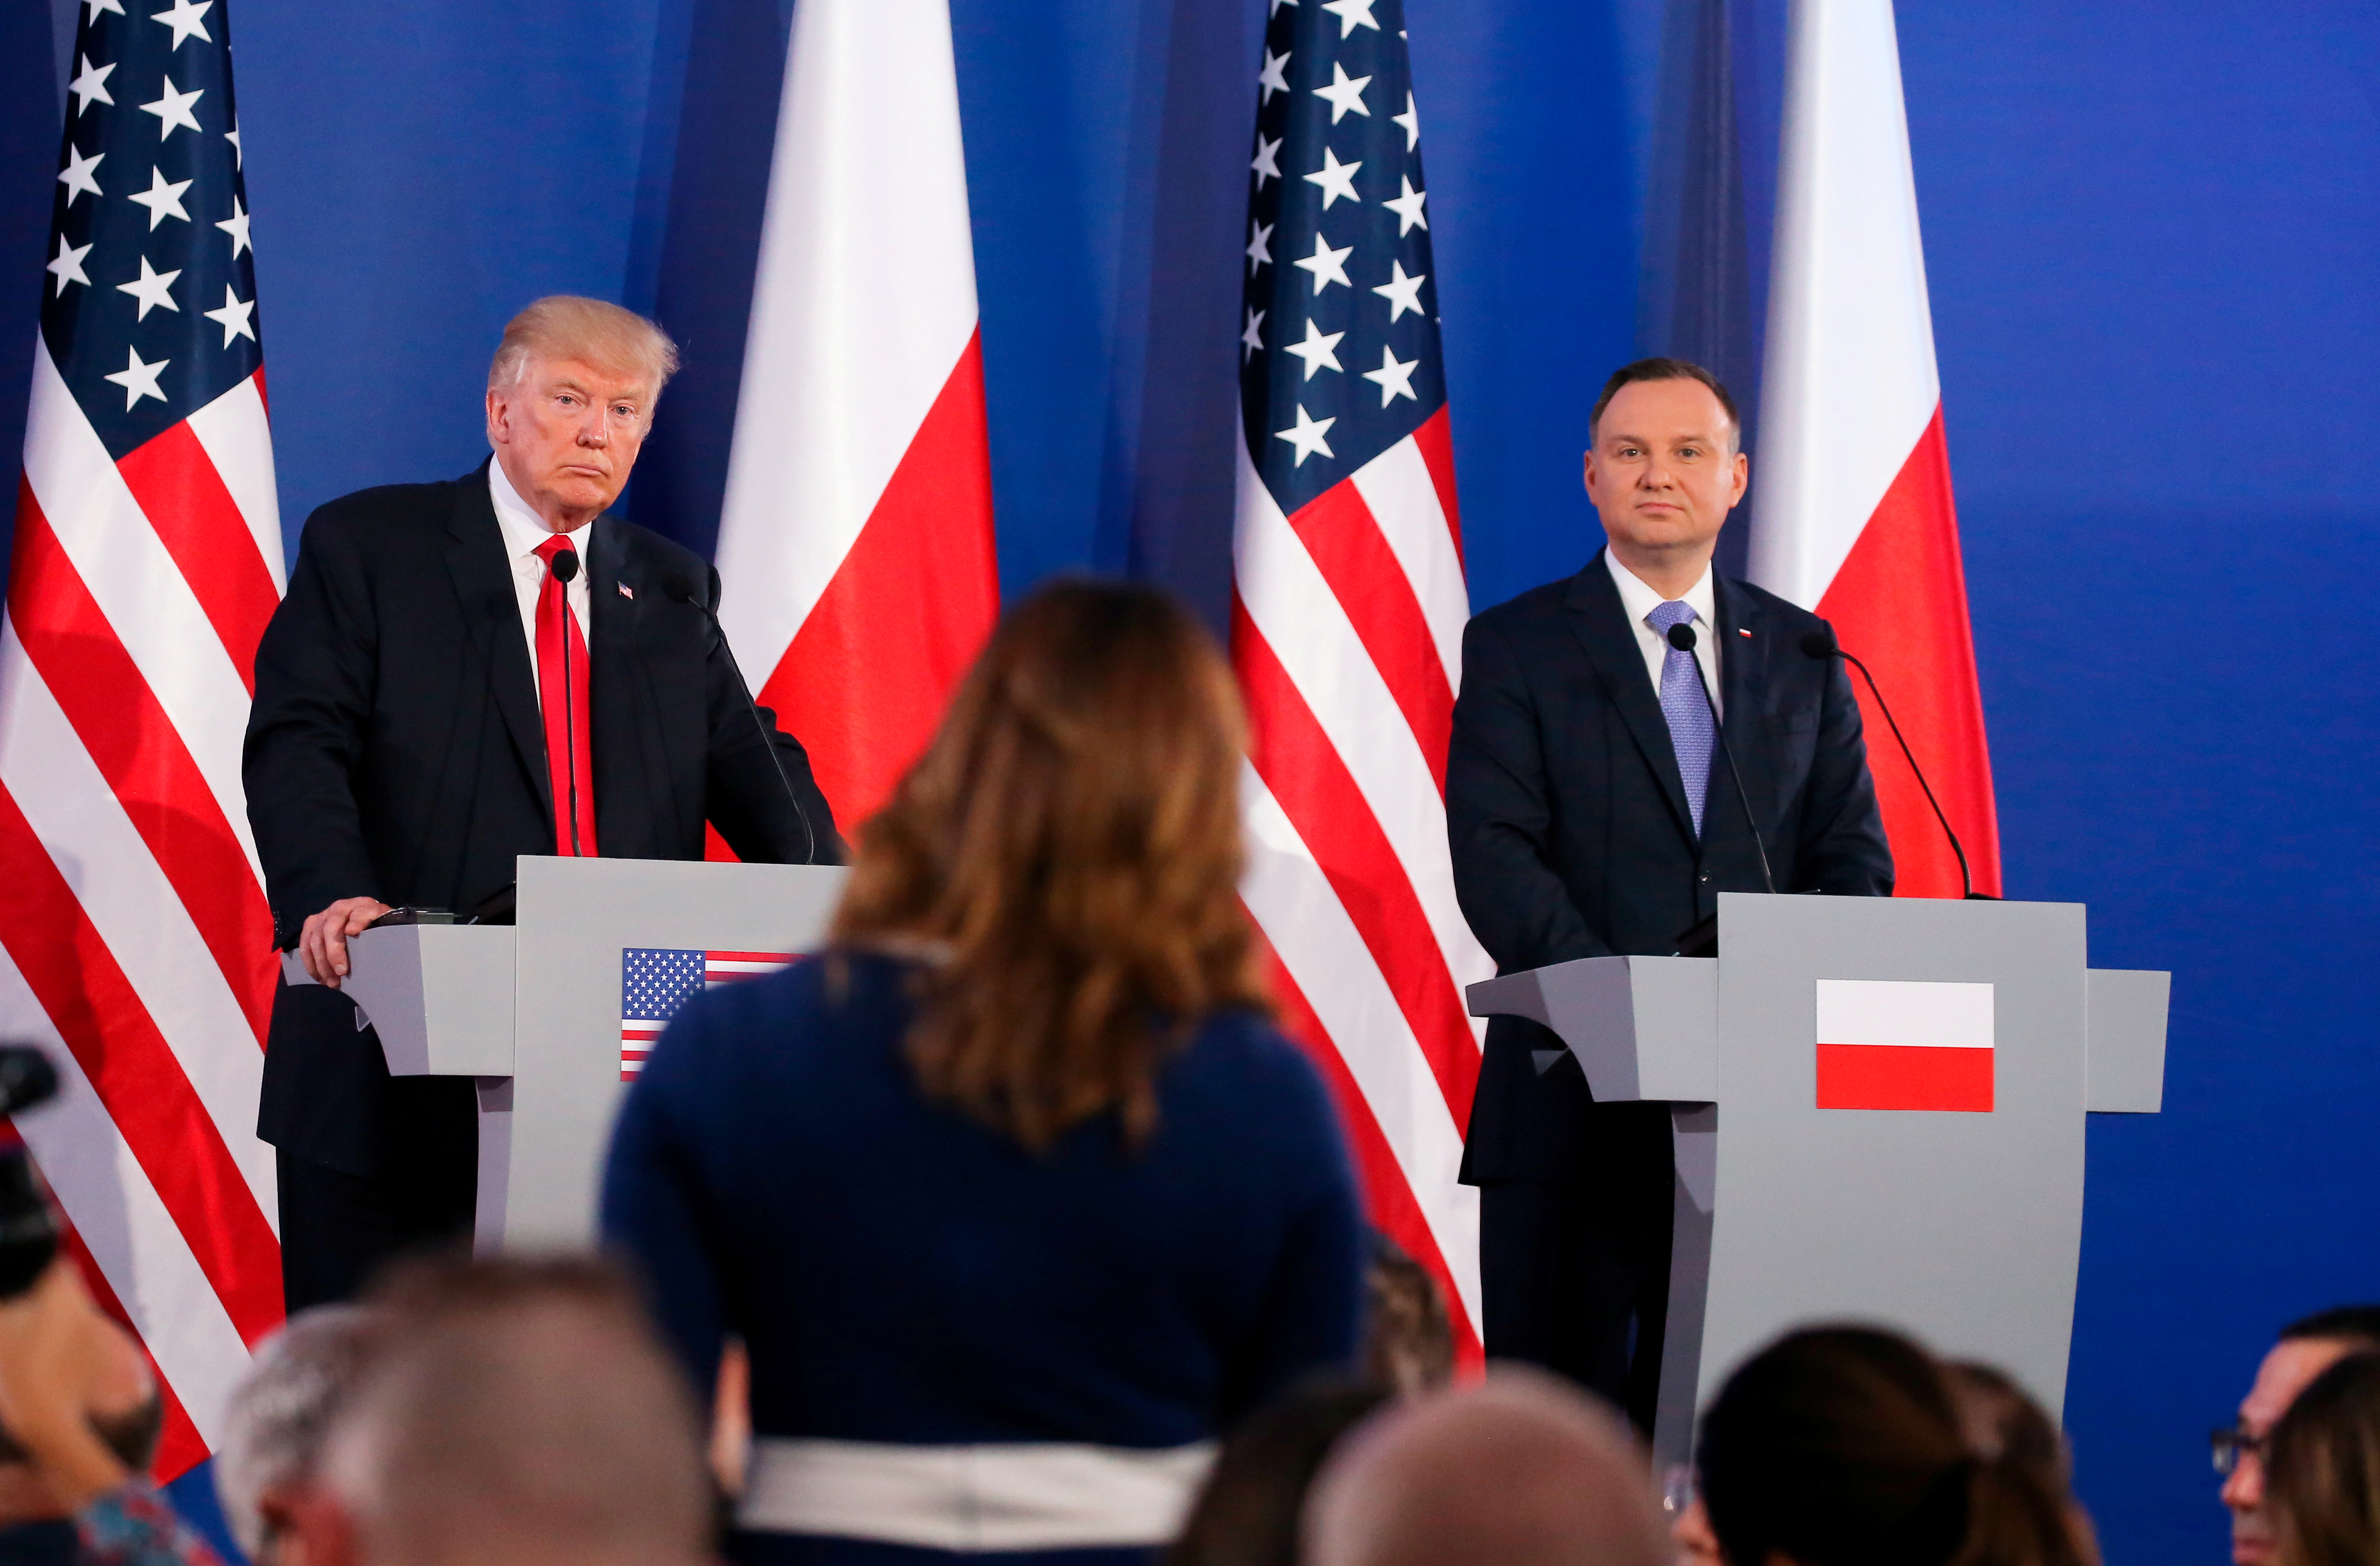 U.S. President Donald Trump and Polish President Andrzej Duda listen to questions from journalists during a joint news conference, in Warsaw, Poland, July 6, 2017.